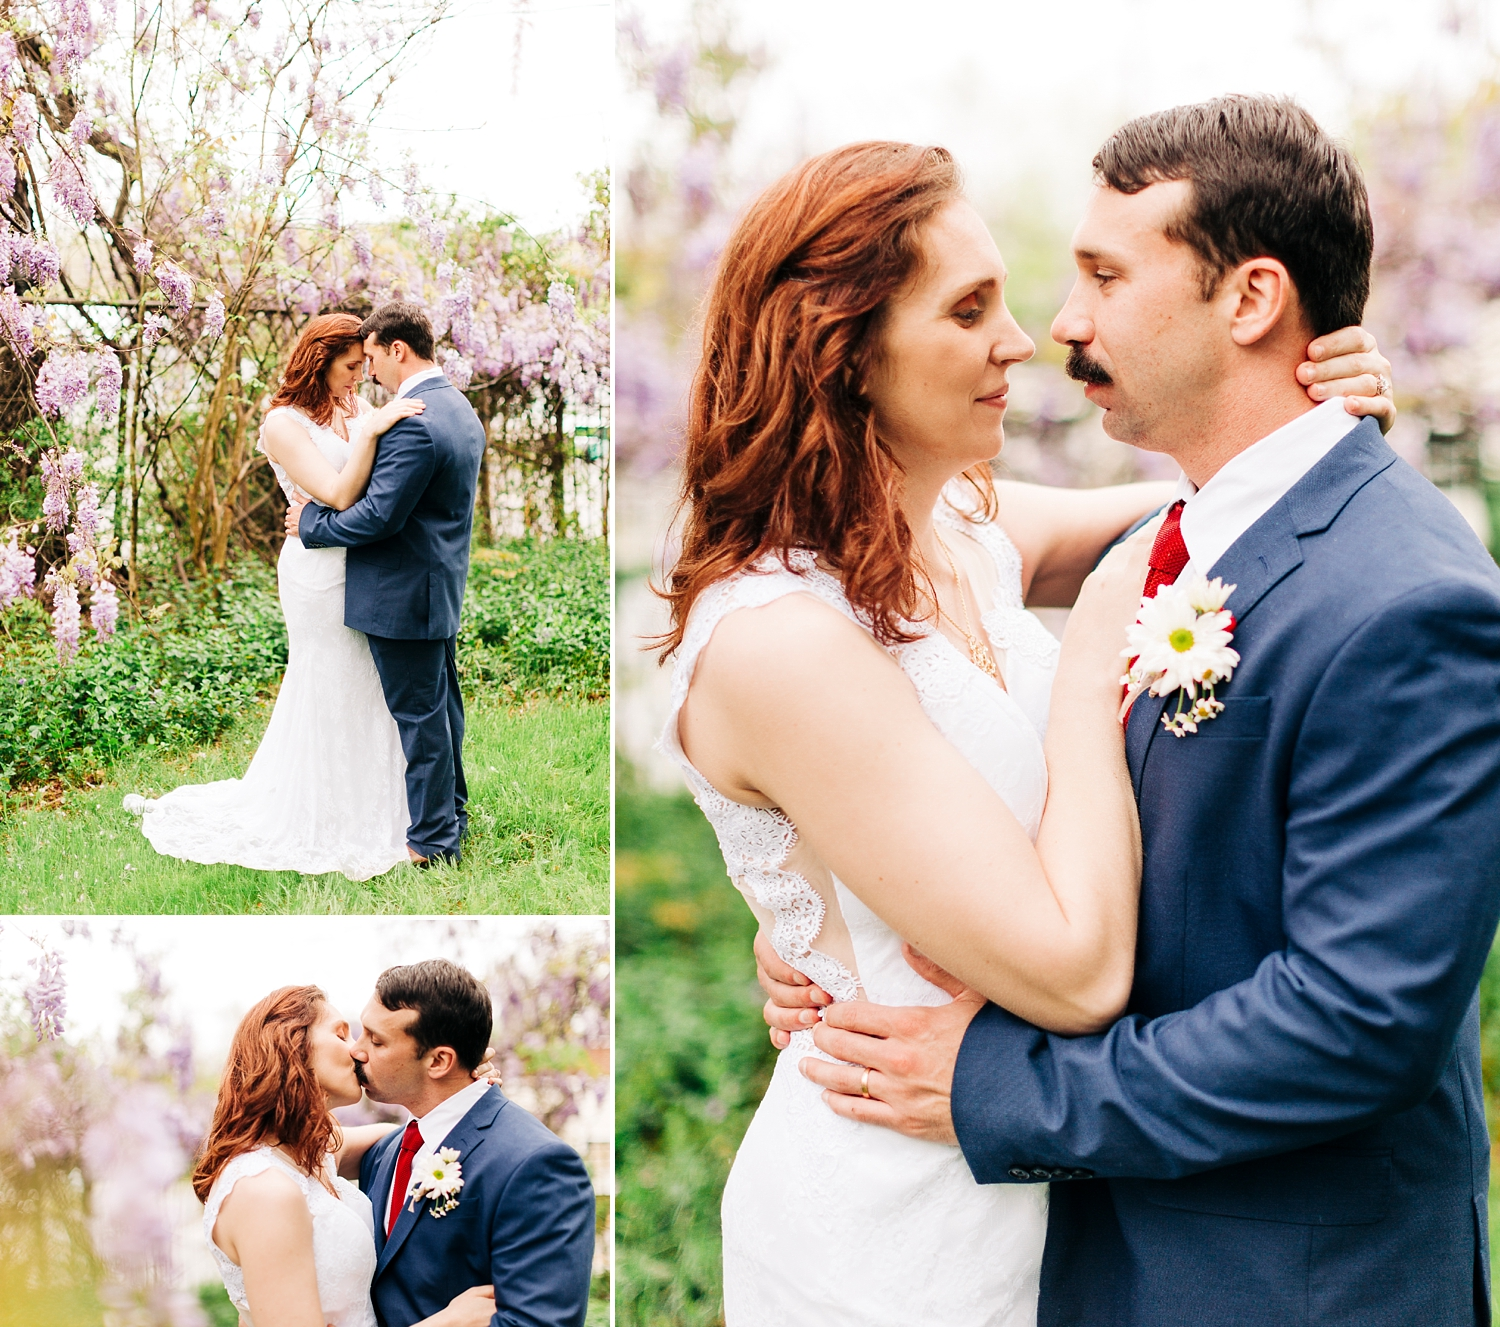 bride and groom portraits in a wisteria filled garden